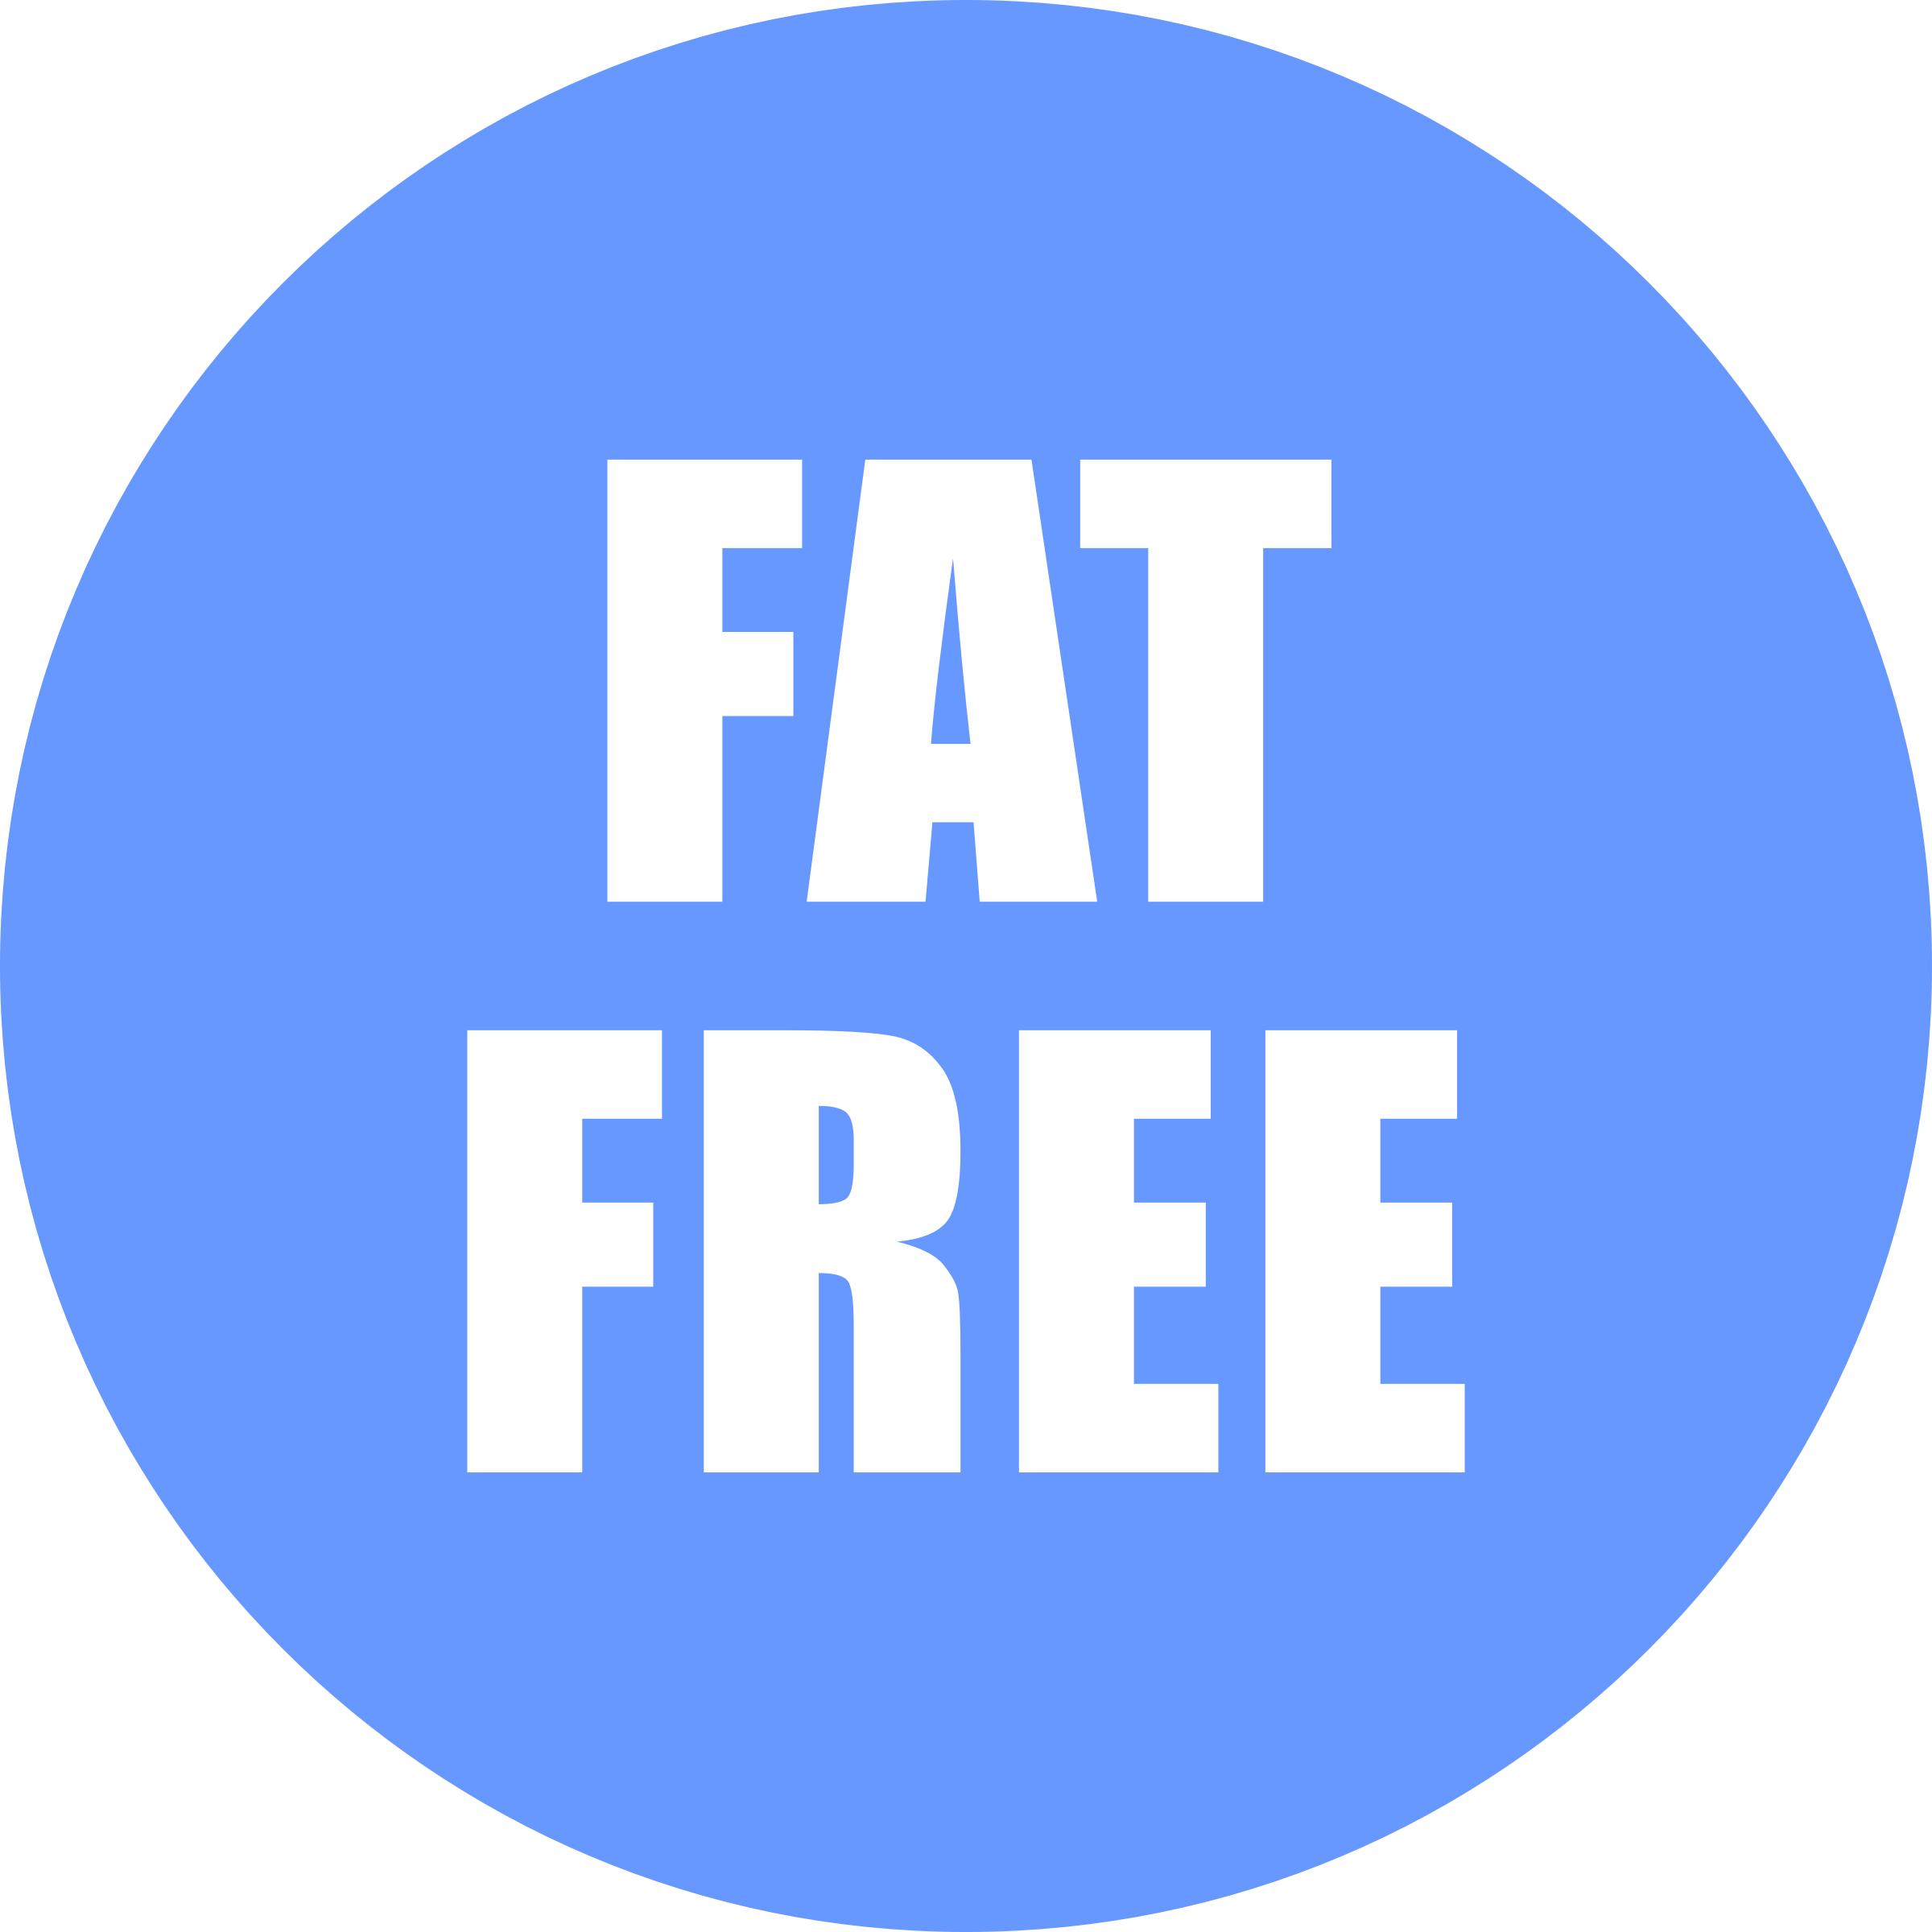 Fat clipart healthy thing. Free icon blue big